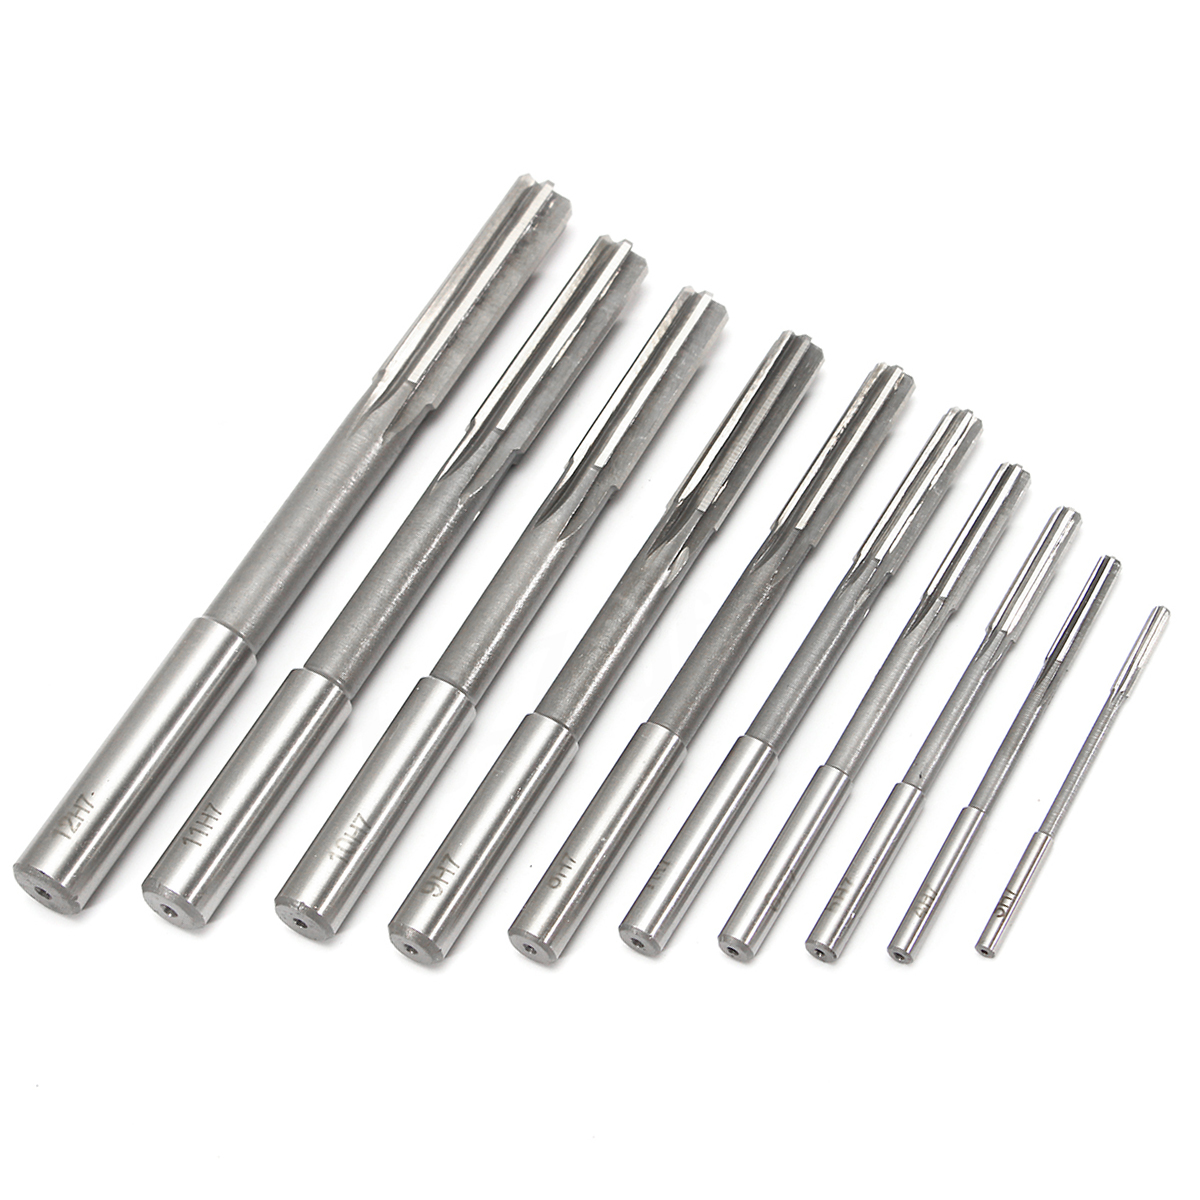 10pcs HSS H7 Straight Shank Milling Reamer Chucking Machine Cutter Tool 3/4/5/6/7/8/9/10/11/12 Mm For Reaming Hole Repair Mayitr